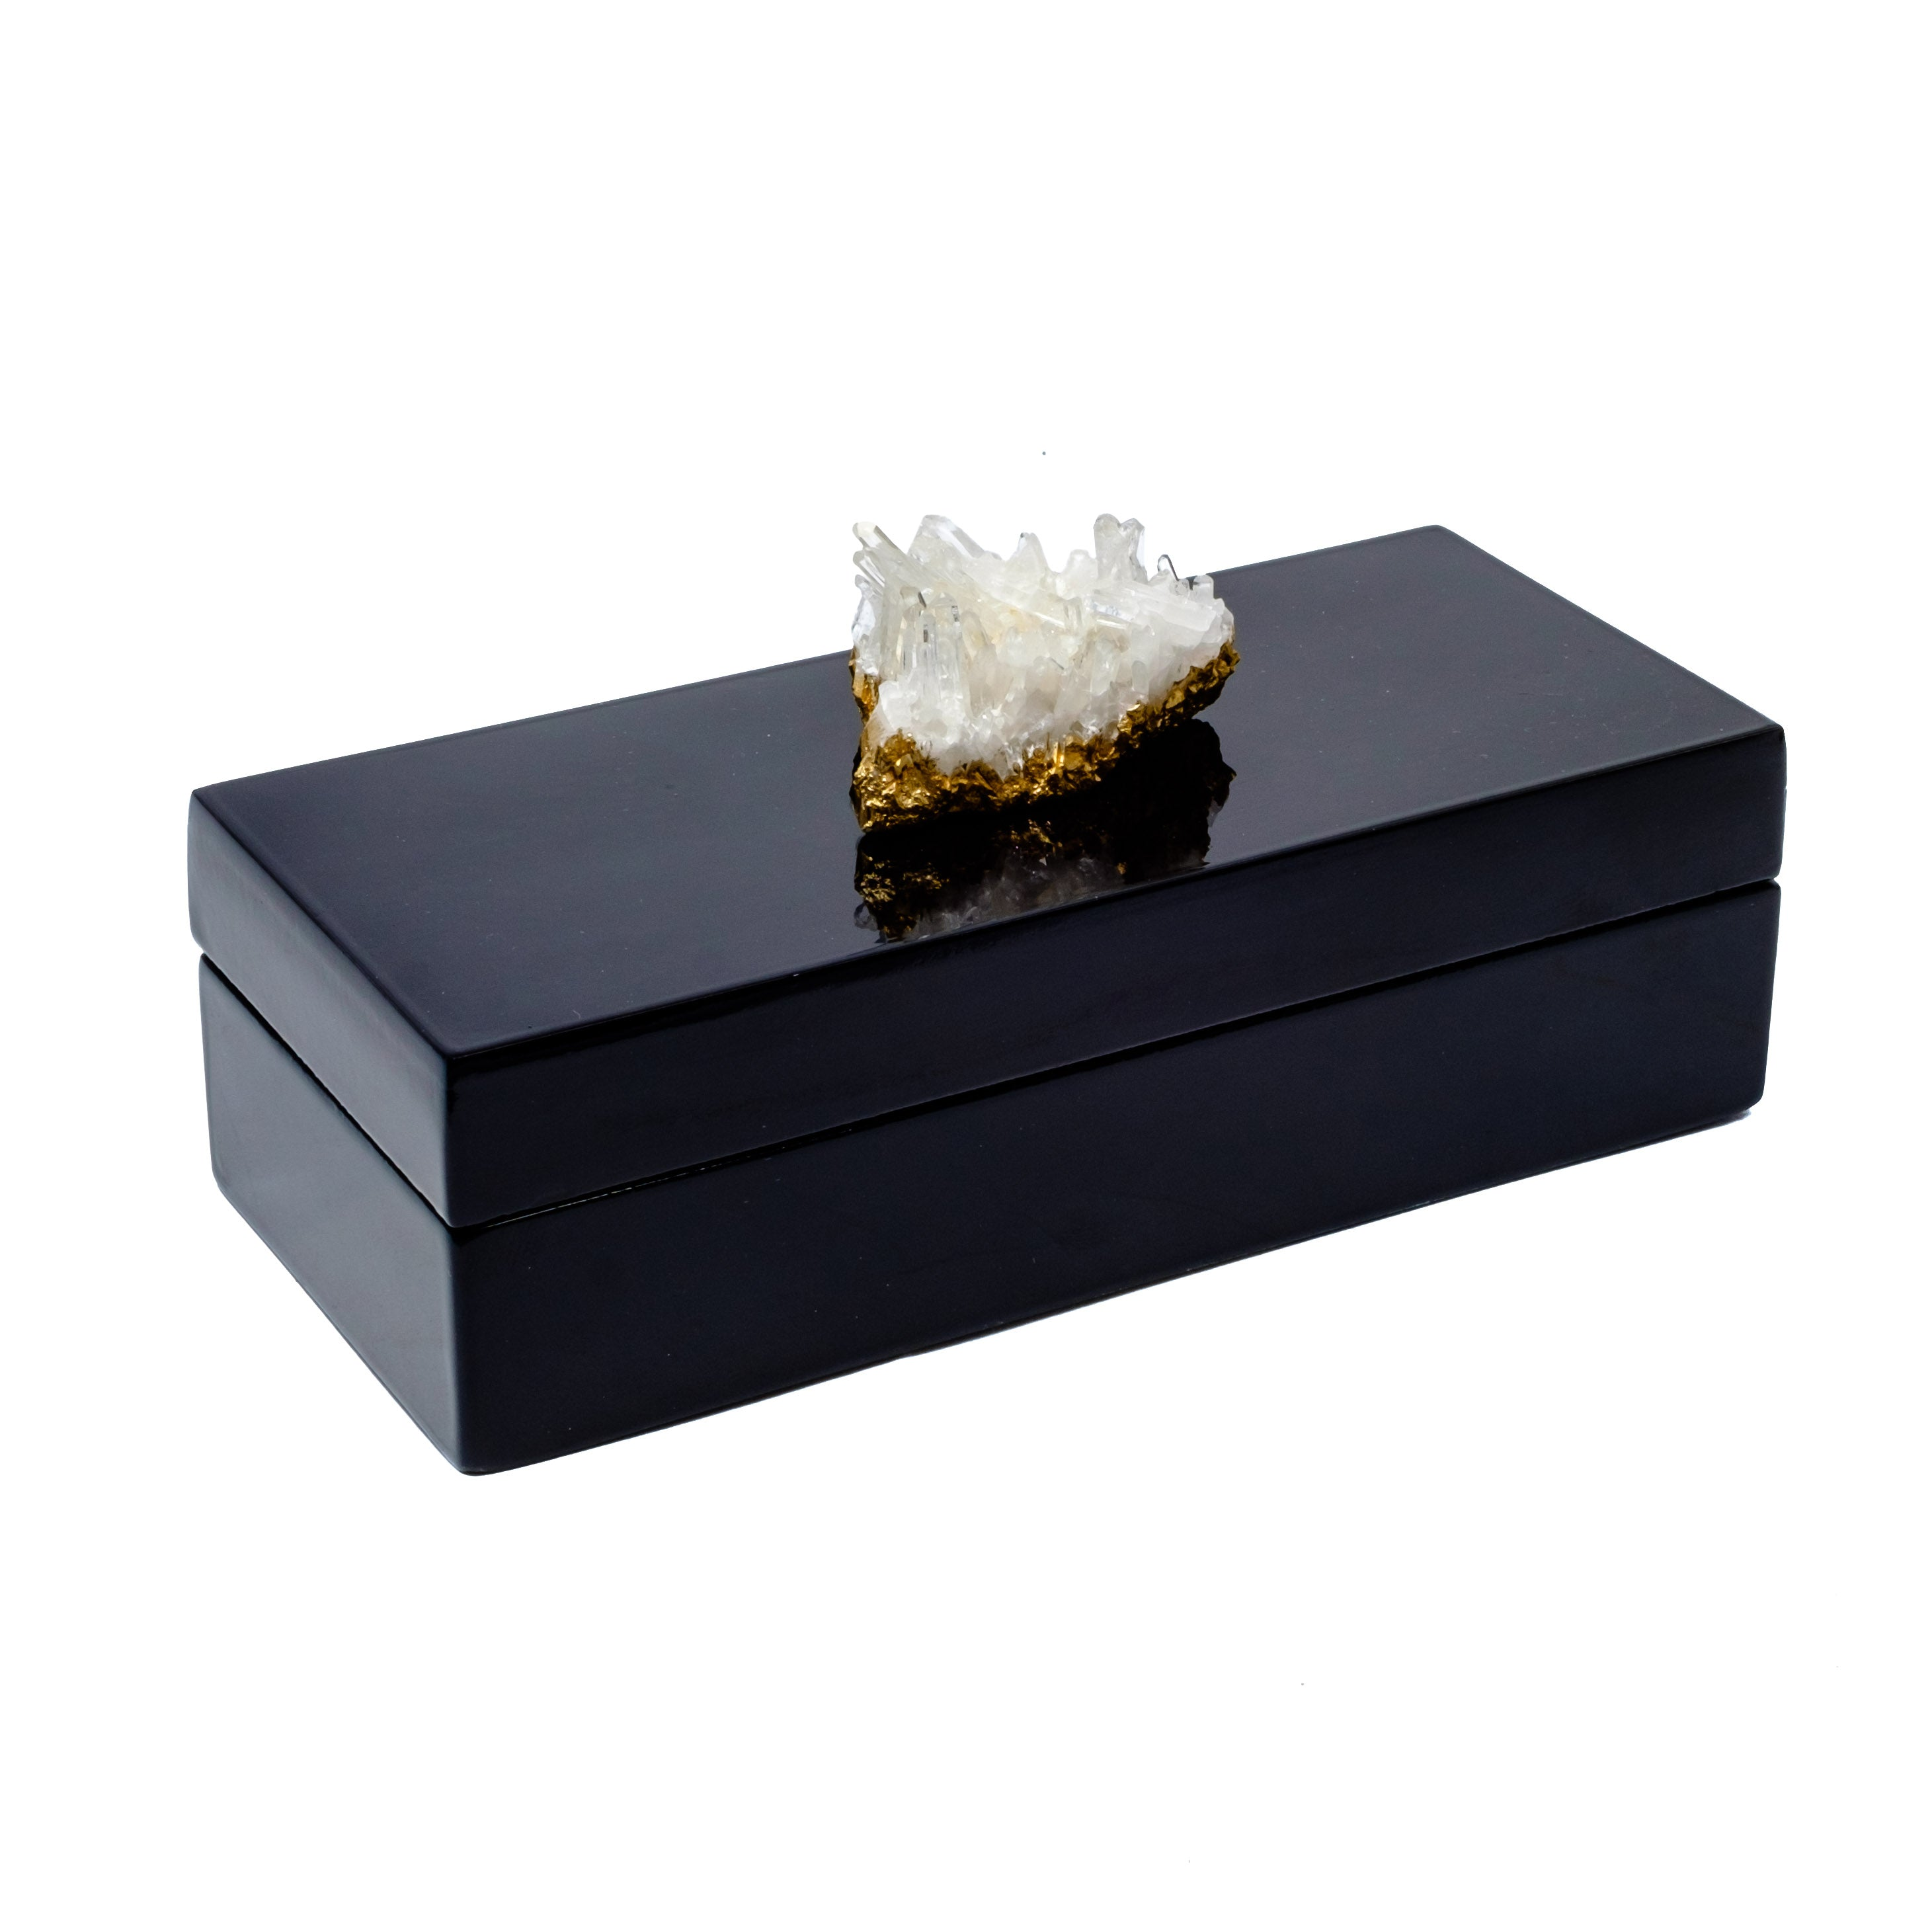 Black Lacquer box with a beautiful quartz crystal by Mapleton Drive